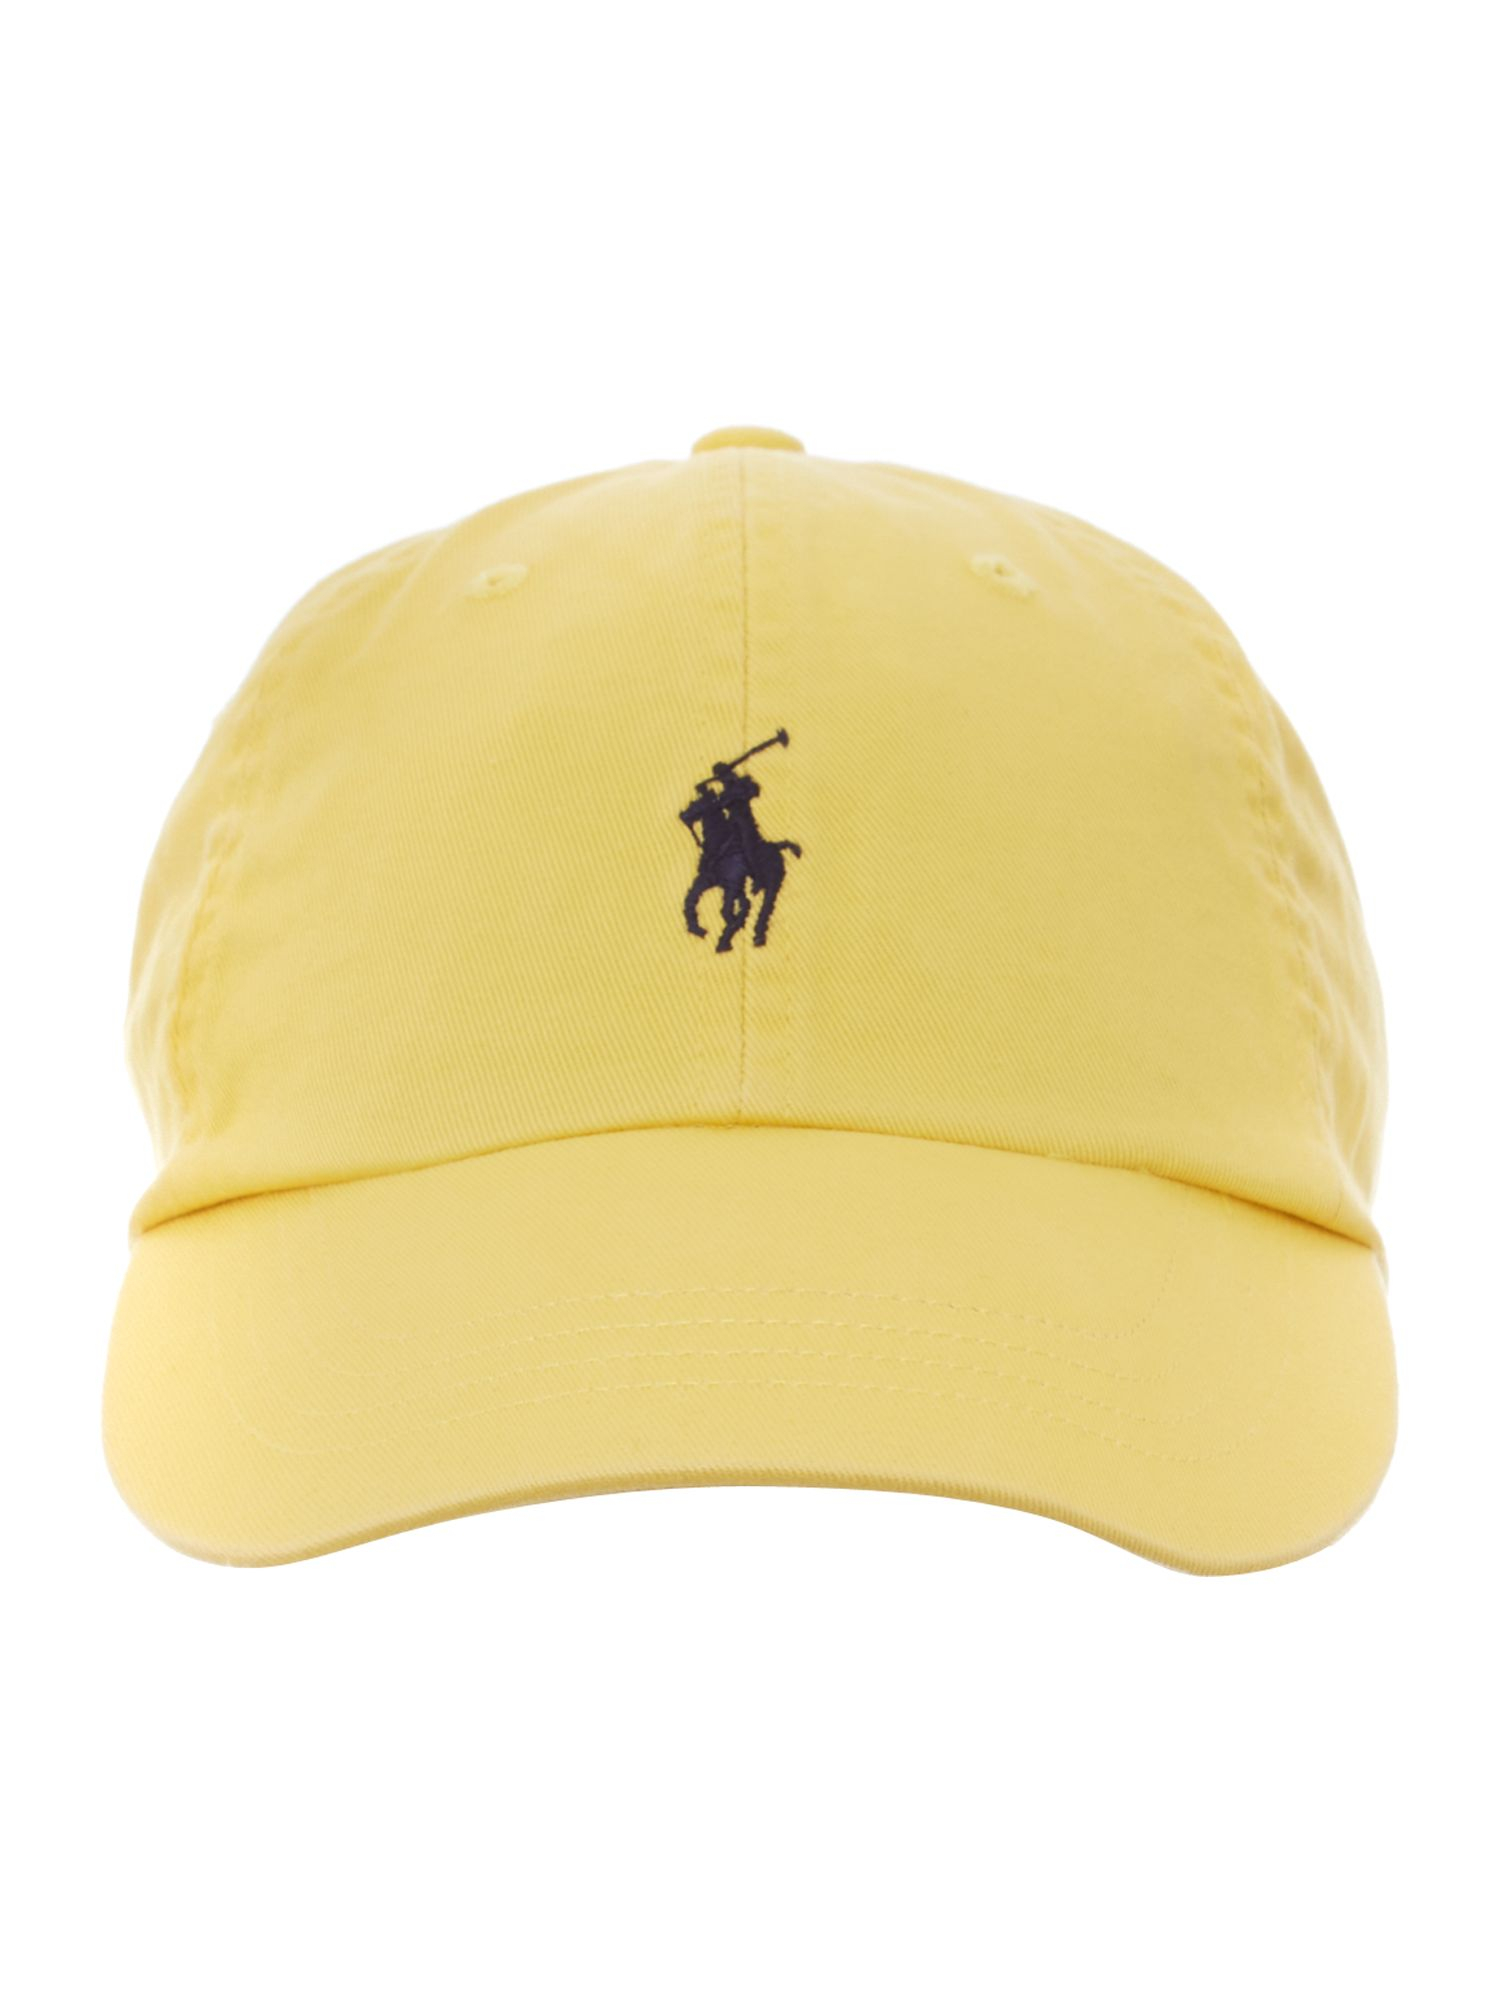 polo ralph lauren classic logo sport cap in yellow for men. Black Bedroom Furniture Sets. Home Design Ideas